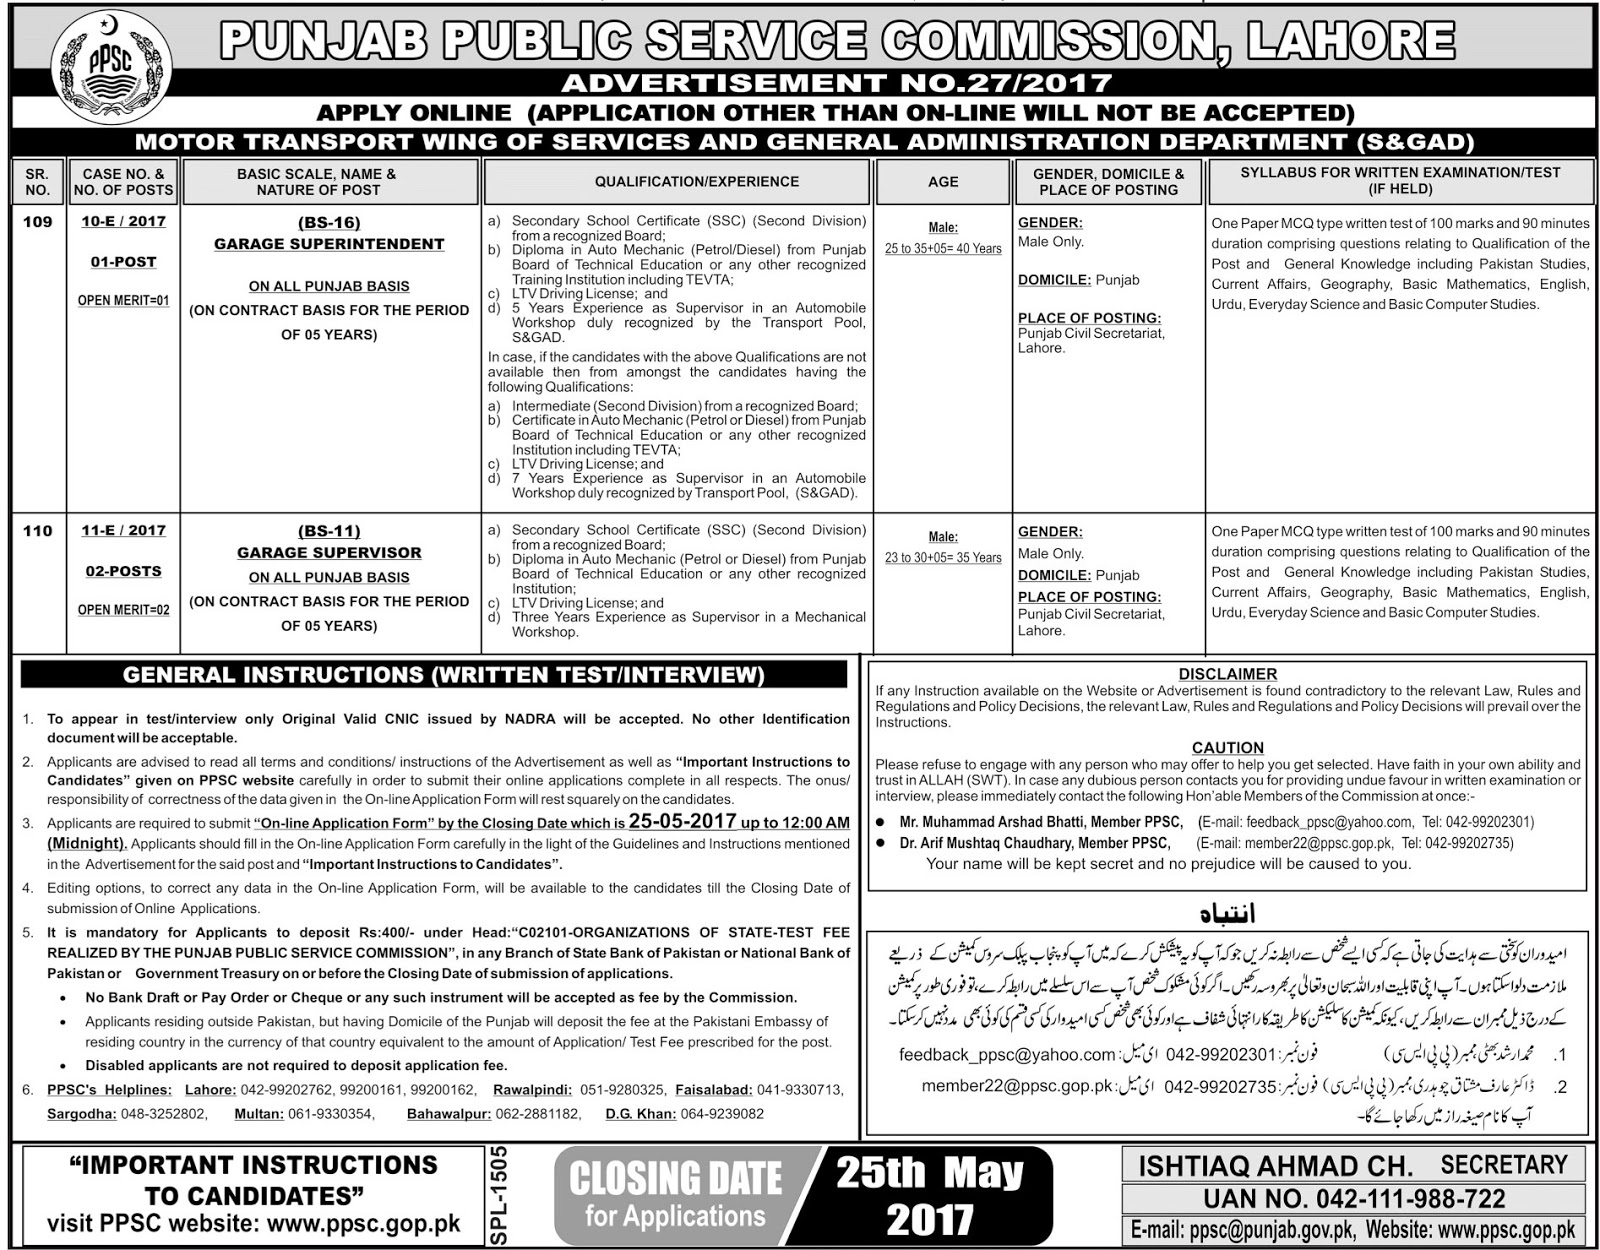 Punjab Public Service Commission PPSC Lahore Jobs in 10 may 2017